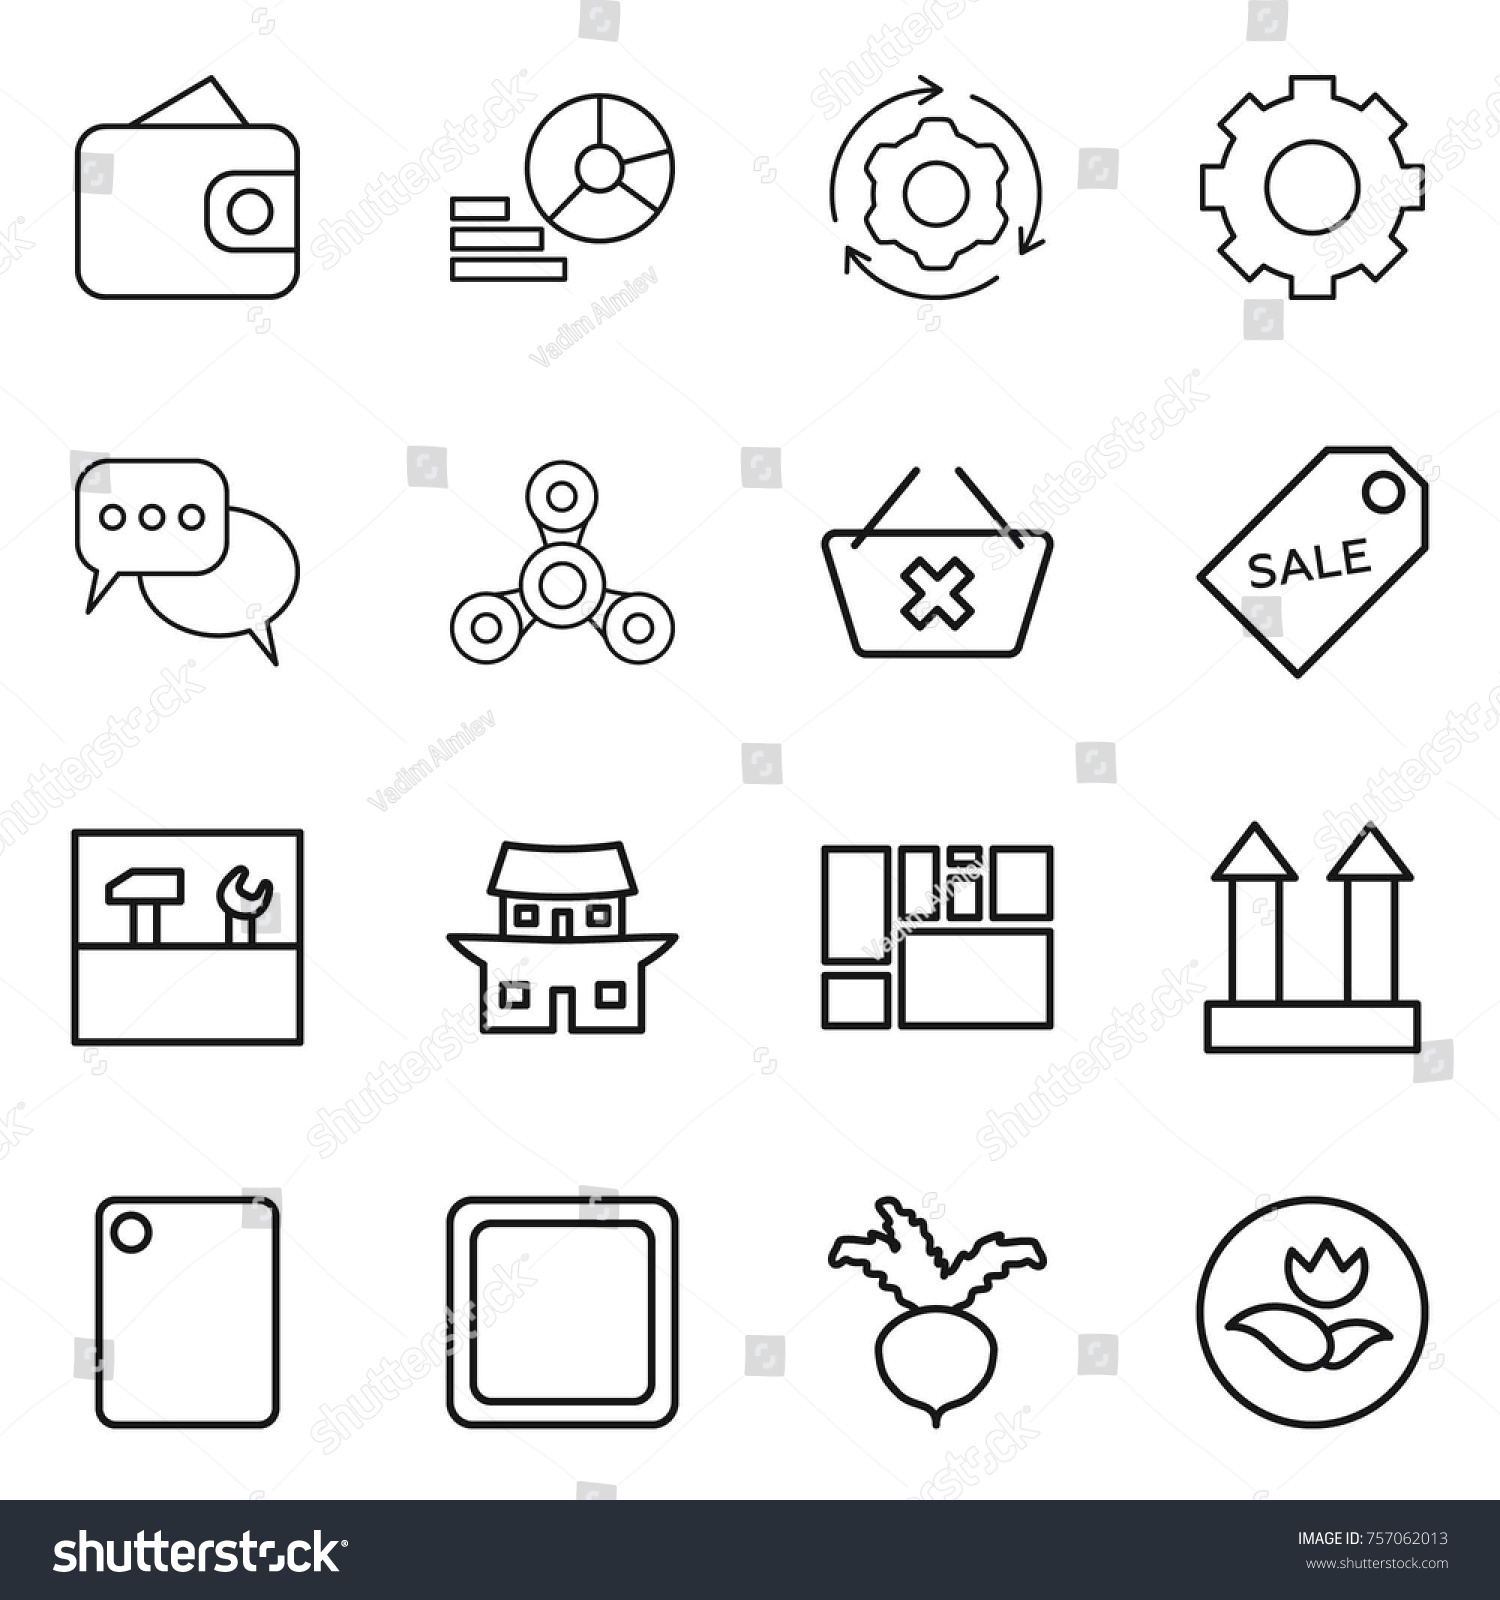 Thin line icon set wallet diagram stock vector 757062013 shutterstock ccuart Gallery